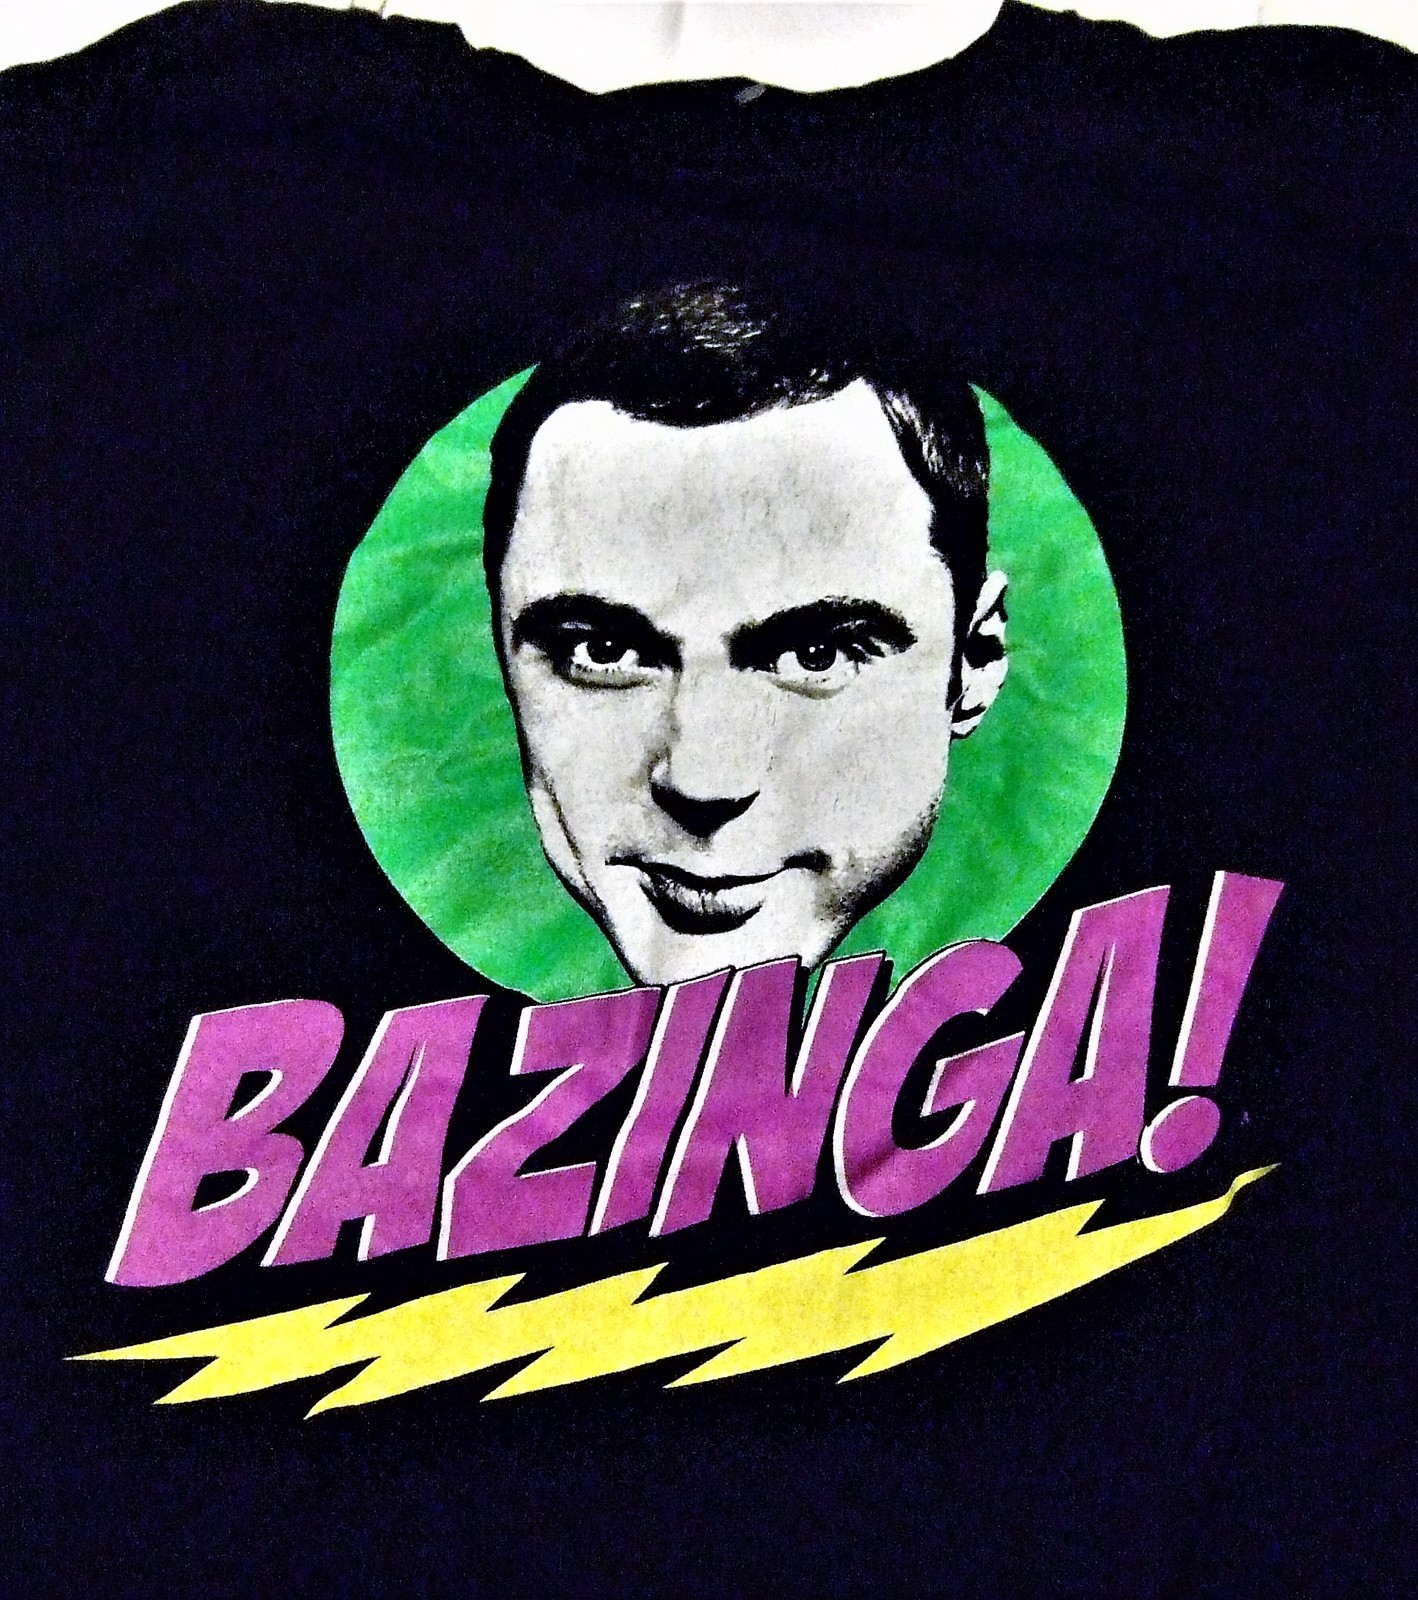 "Primary image for T Shirt -The Big Bang Theory Sheldon Cooper "" Baznaga"""